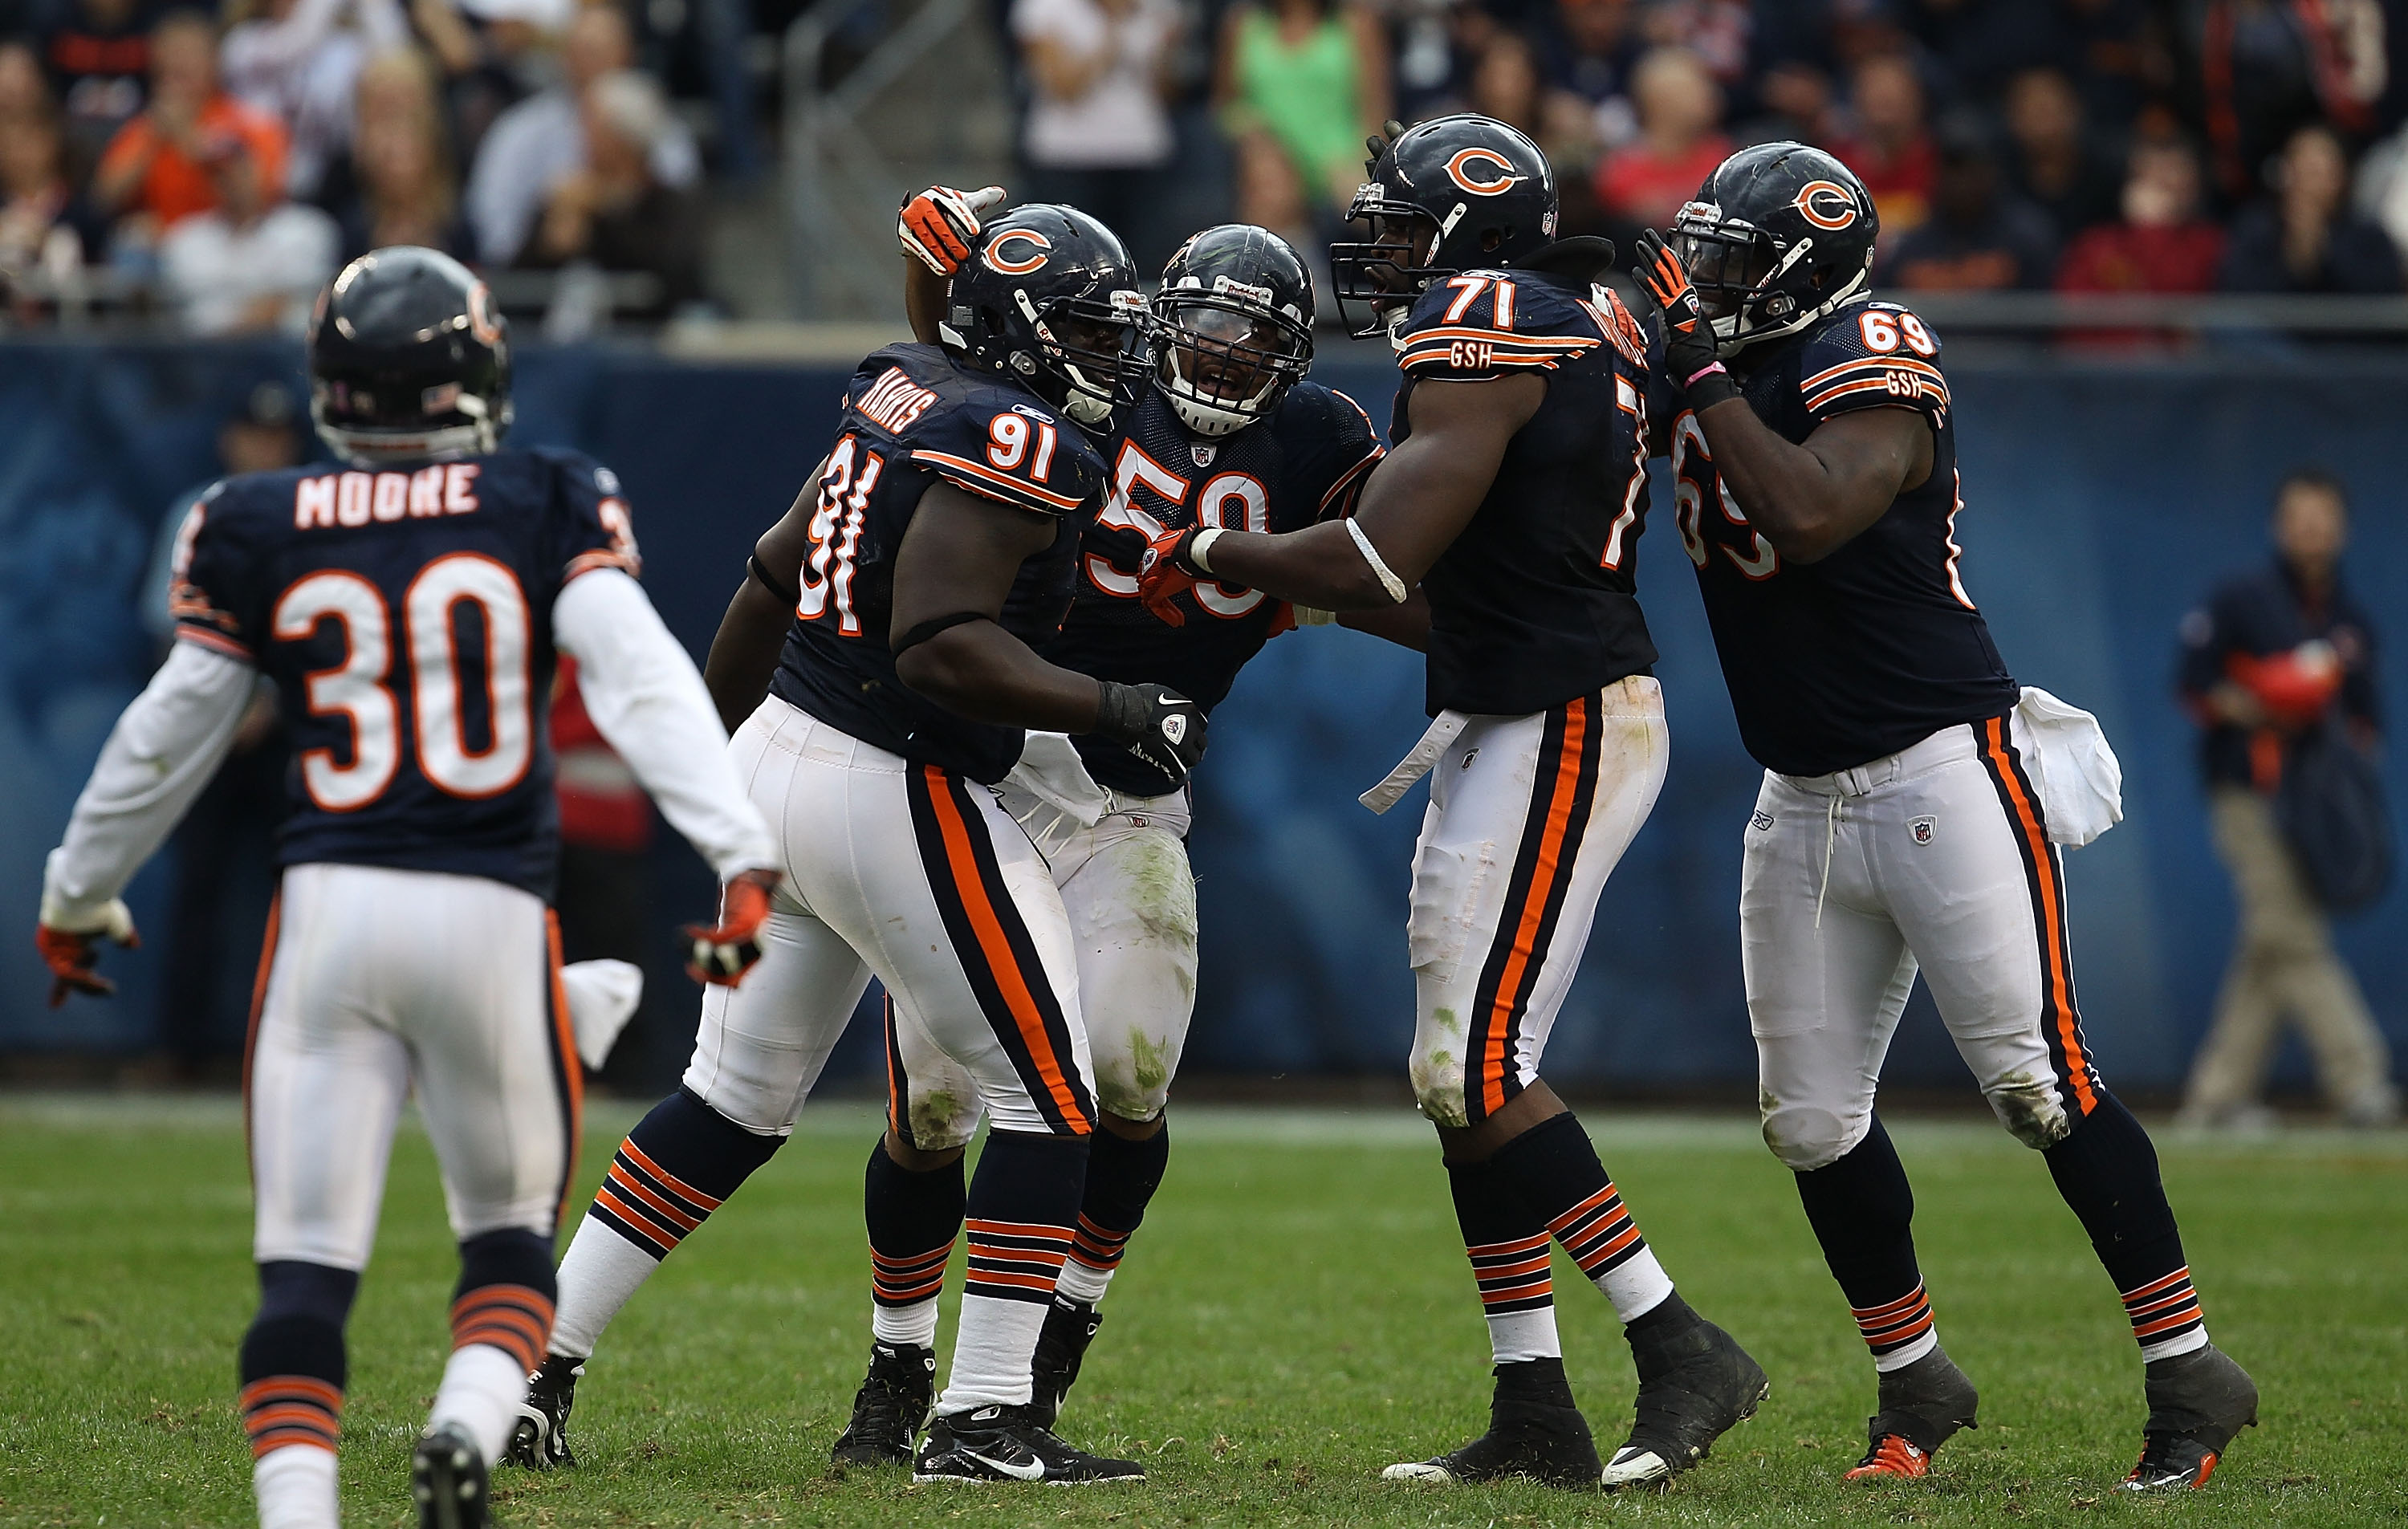 CHICAGO - OCTOBER 24: (L-R) D.J. Moore #30, Tommie Harris #91, Rod Wilson #58, Israel Idonije #71 and Henry Melton #69 of the Chicago Bears celebrate a defensive stop against the Washington Redskins at Soldier Field on October 24, 2010 in Chicago, Illinoi